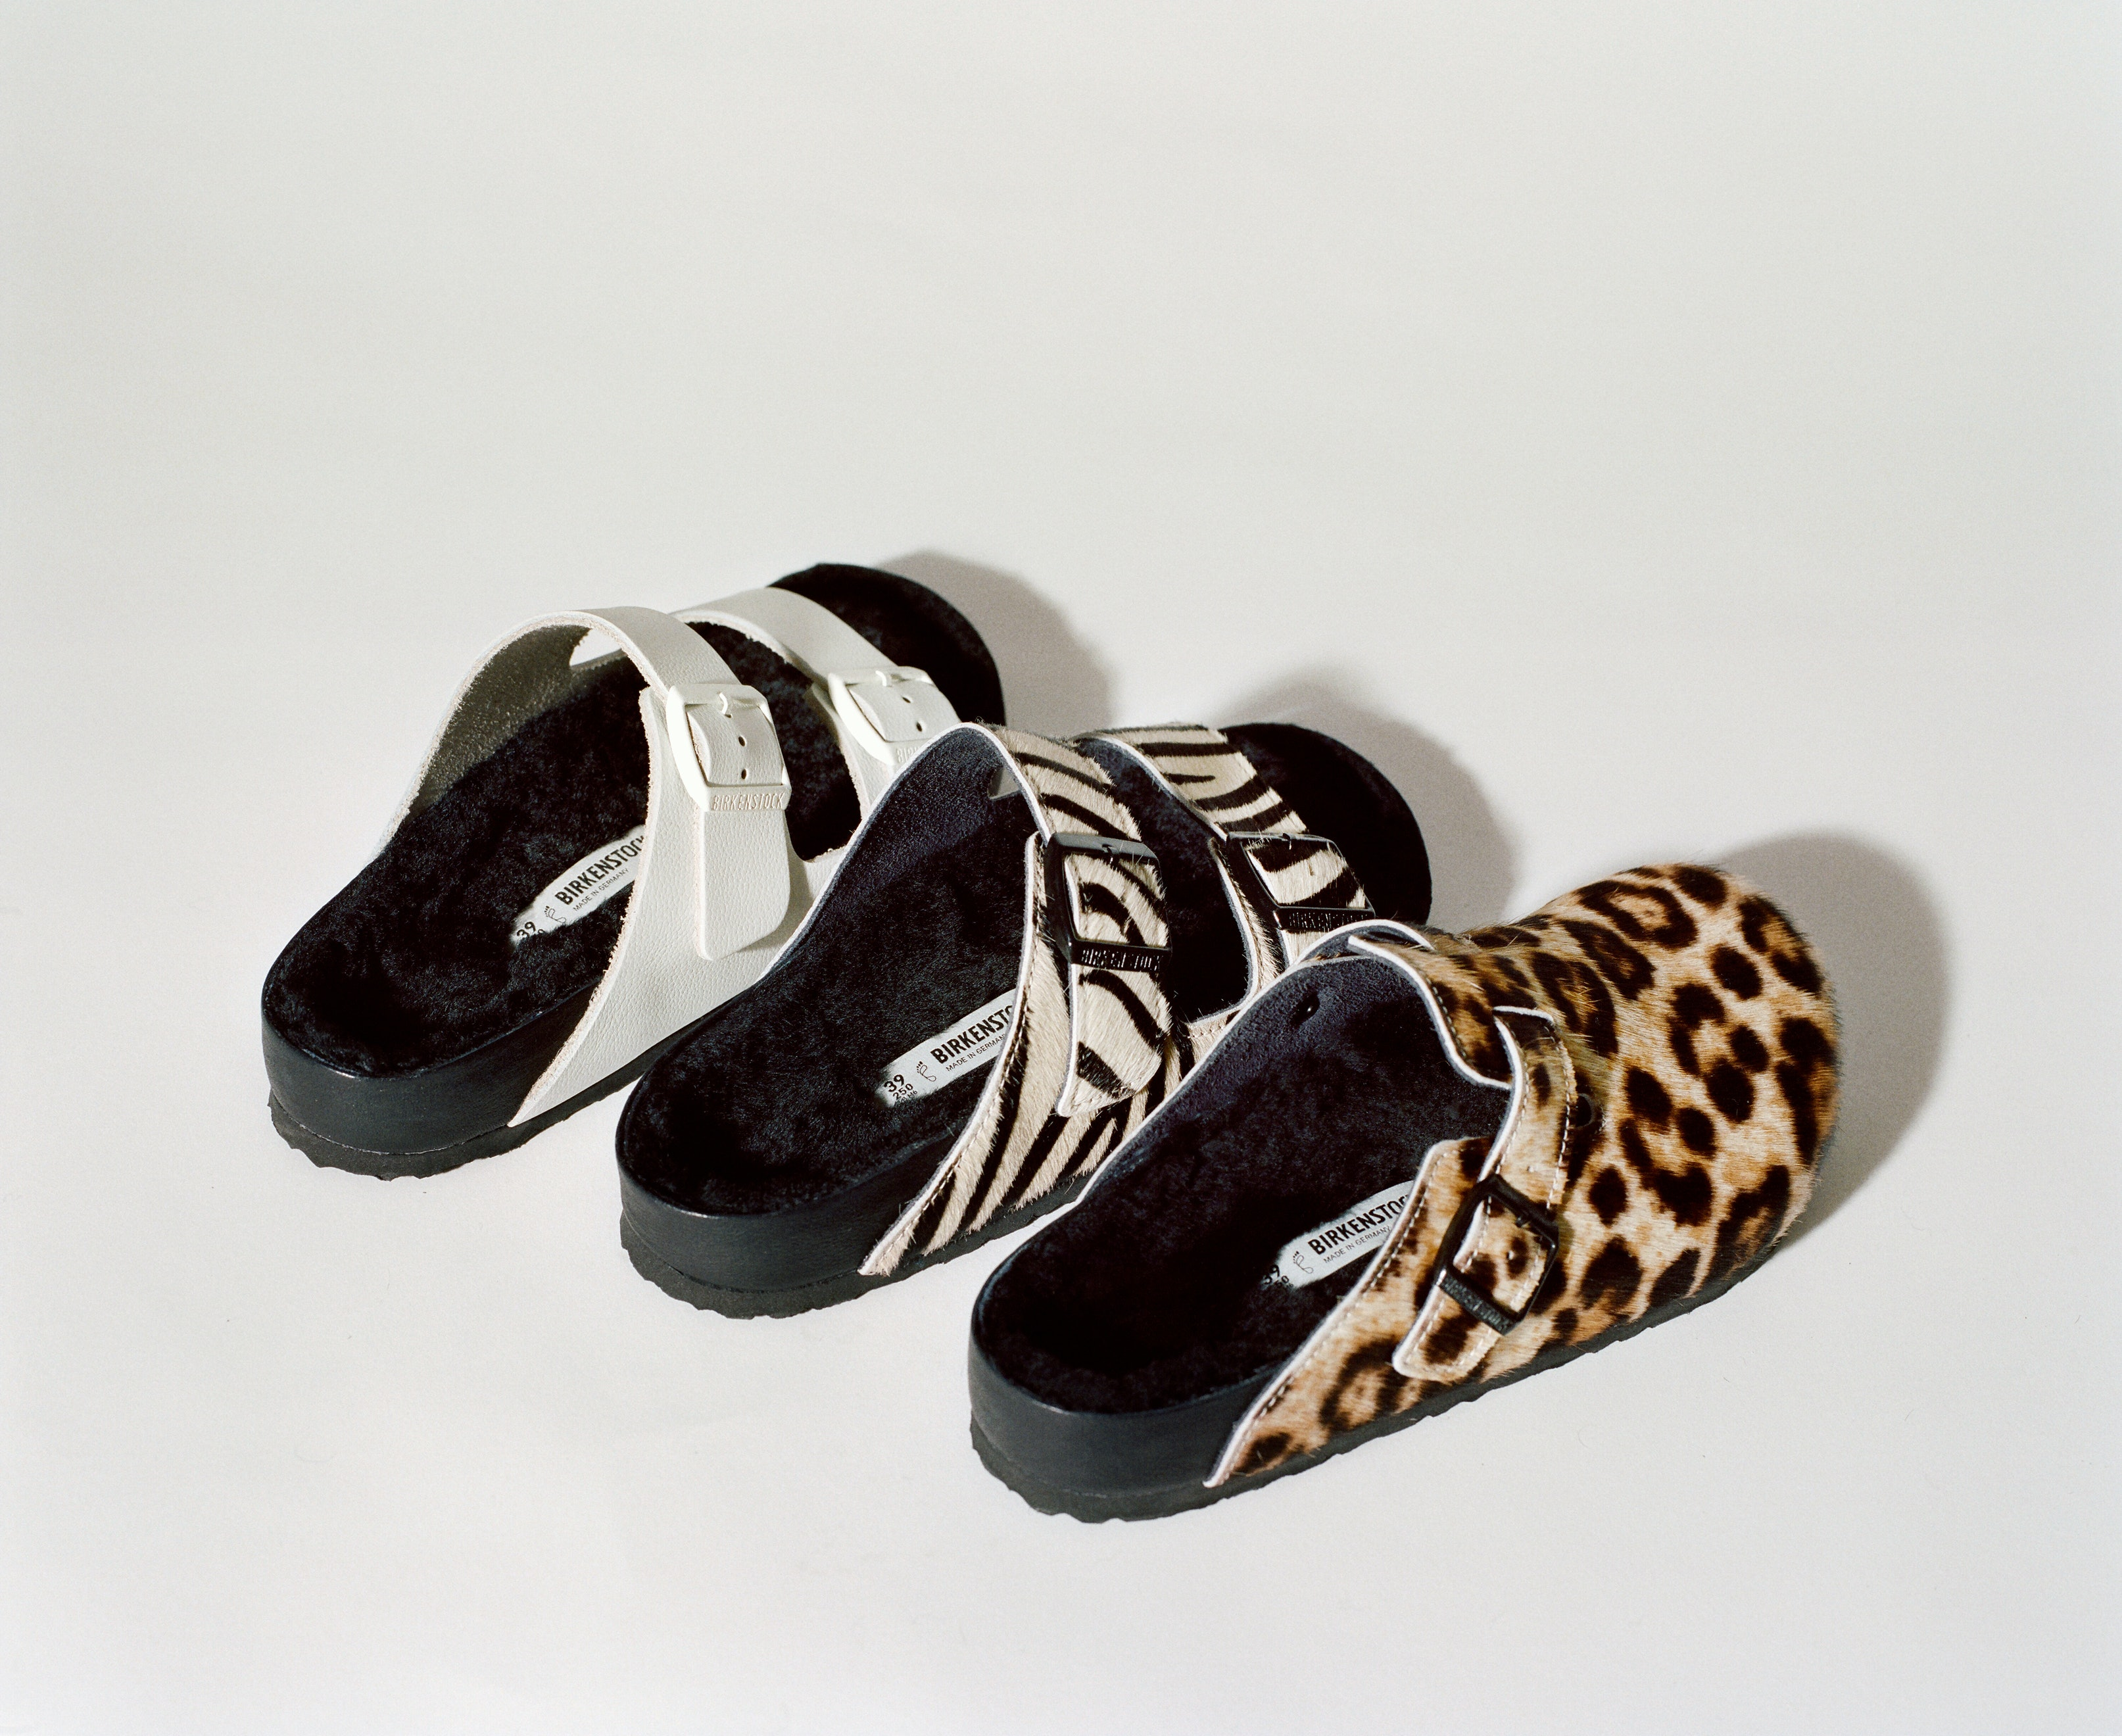 a6705e35045 Opening Ceremony s Birkenstock Collab Brings Animal Print To Your Favorite  Comfy Shoes